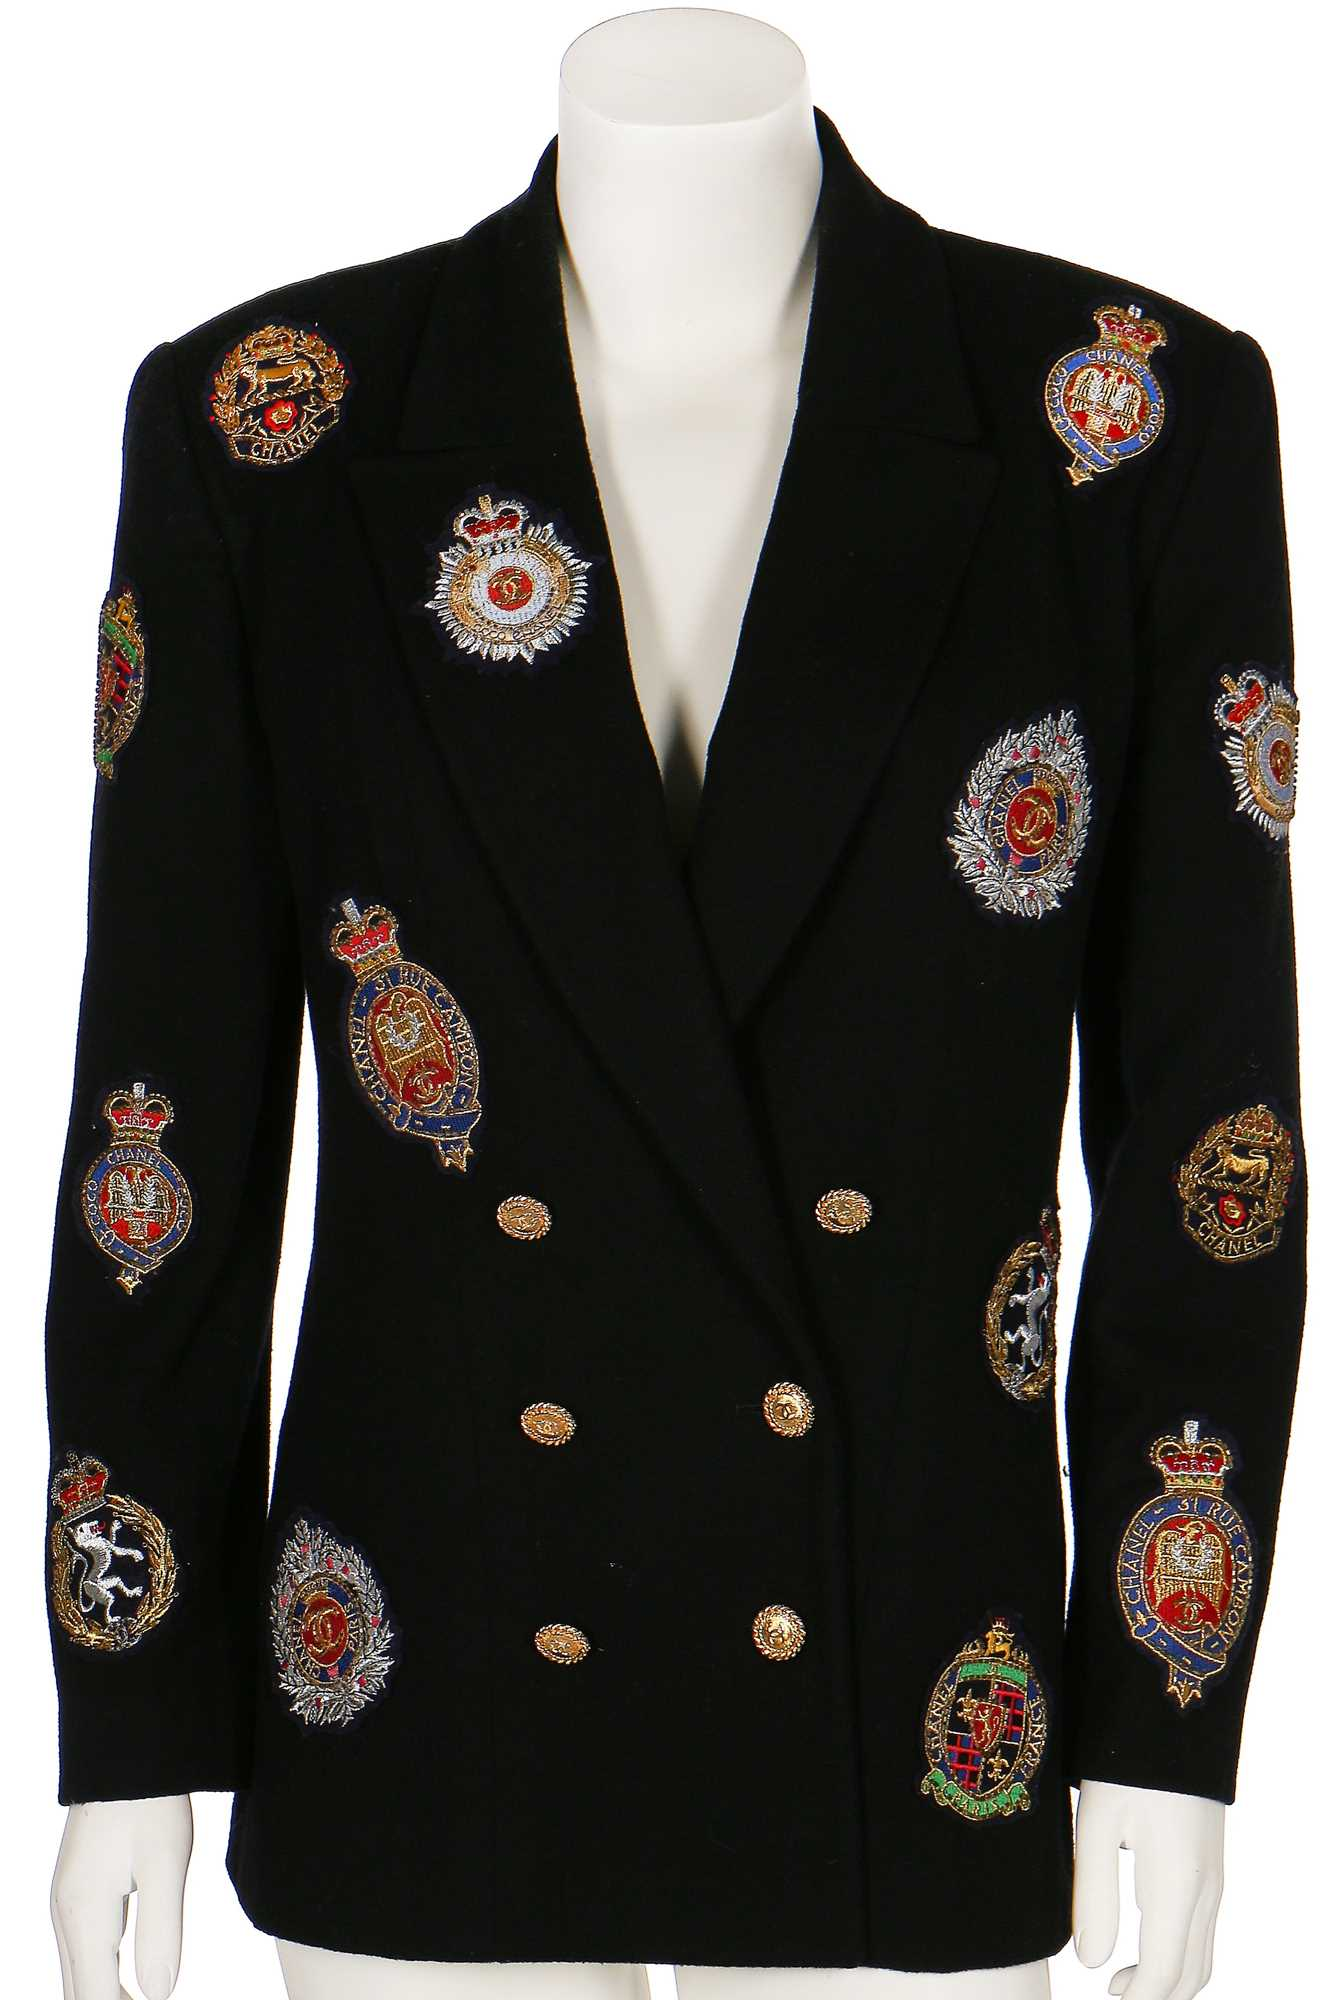 Lot 19-A Chanel by Karl Lagerfeld black wool blazer covered in embroidered badges, early 1990s